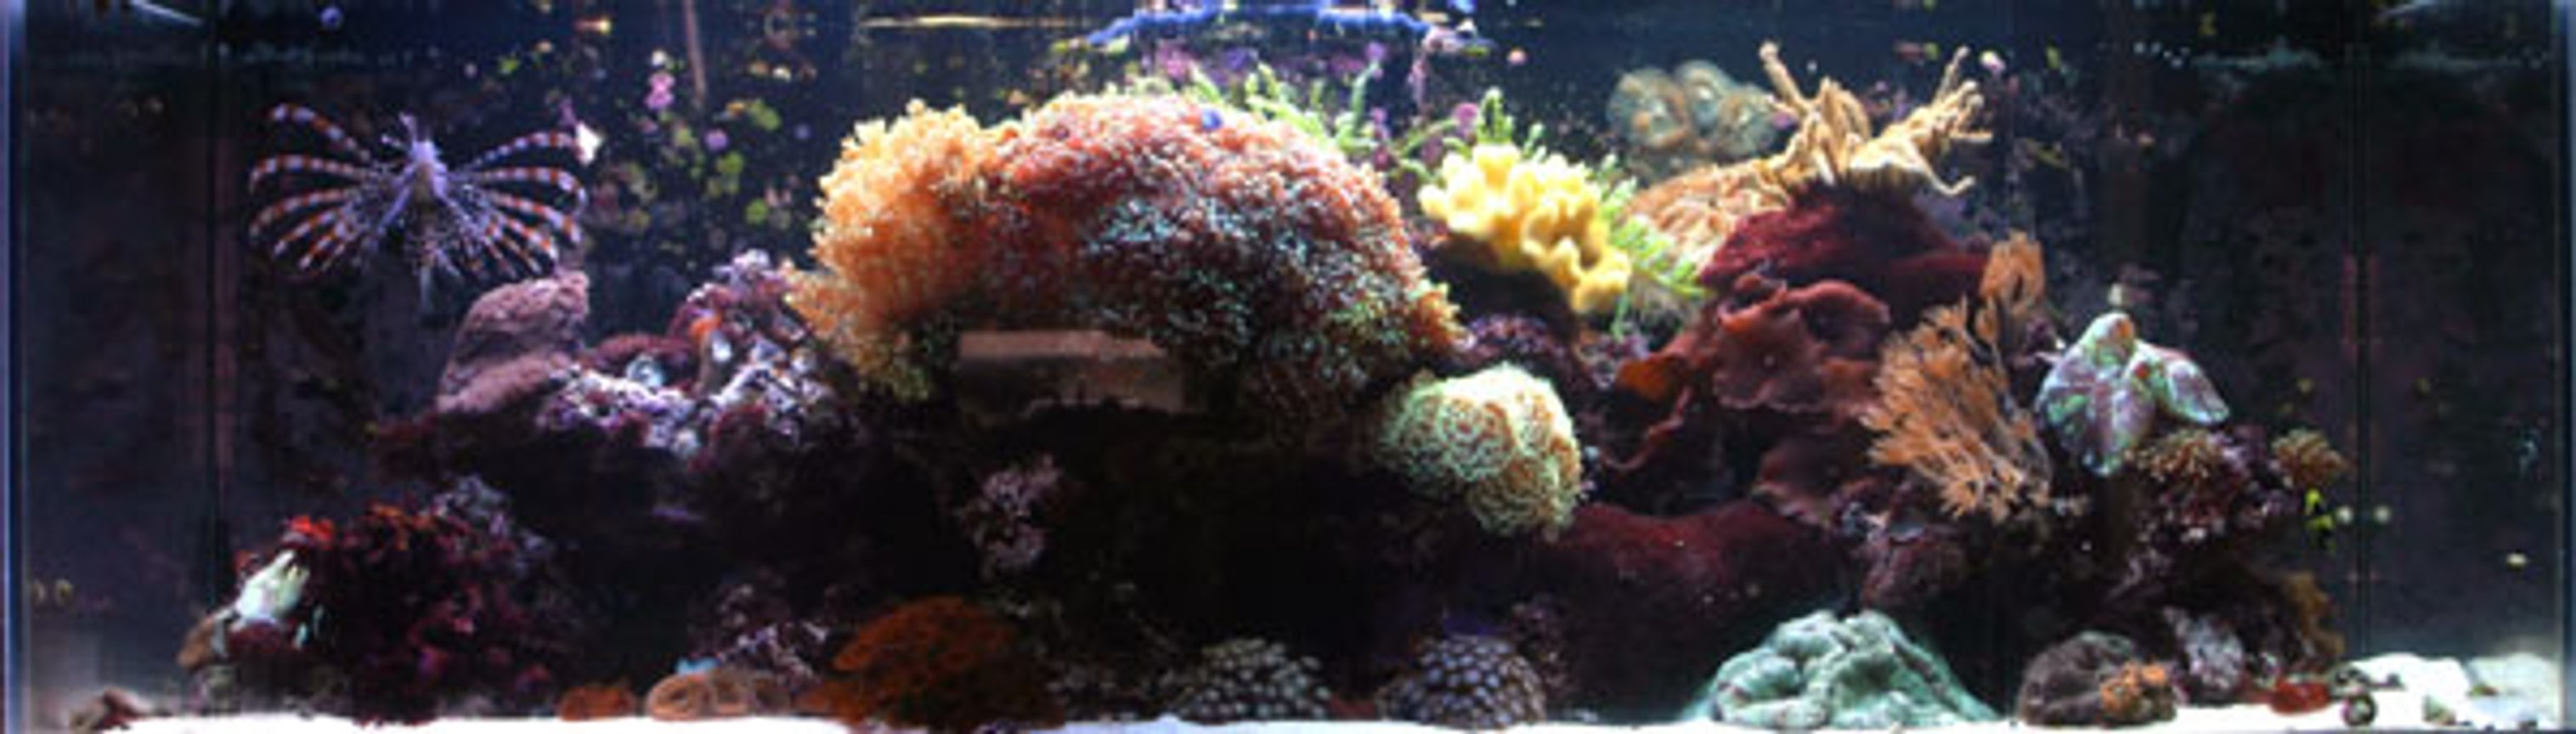 corals inverts - sarcophyton elegans - yellow fiji leather coral - Large mushroom soft corals